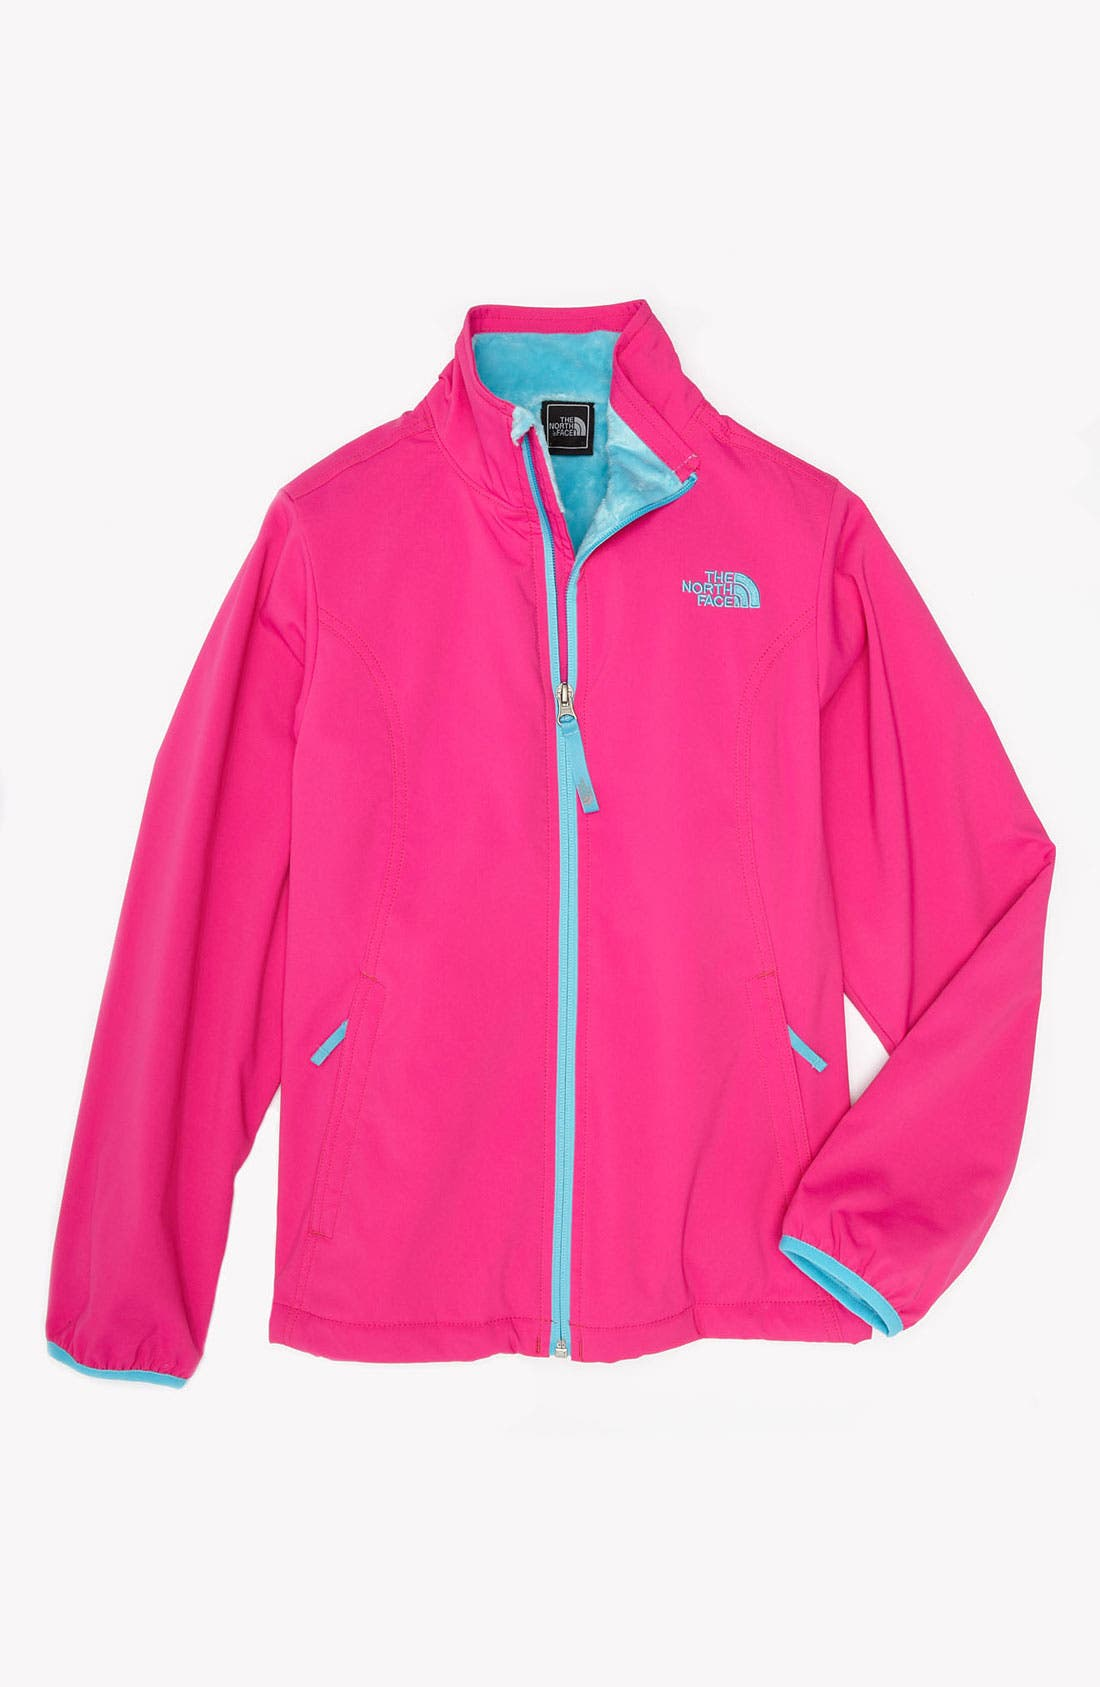 Alternate Image 1 Selected - The North Face 'Mossbud' Softshell Lightweight Jacket (Little Girls & Big Girls)